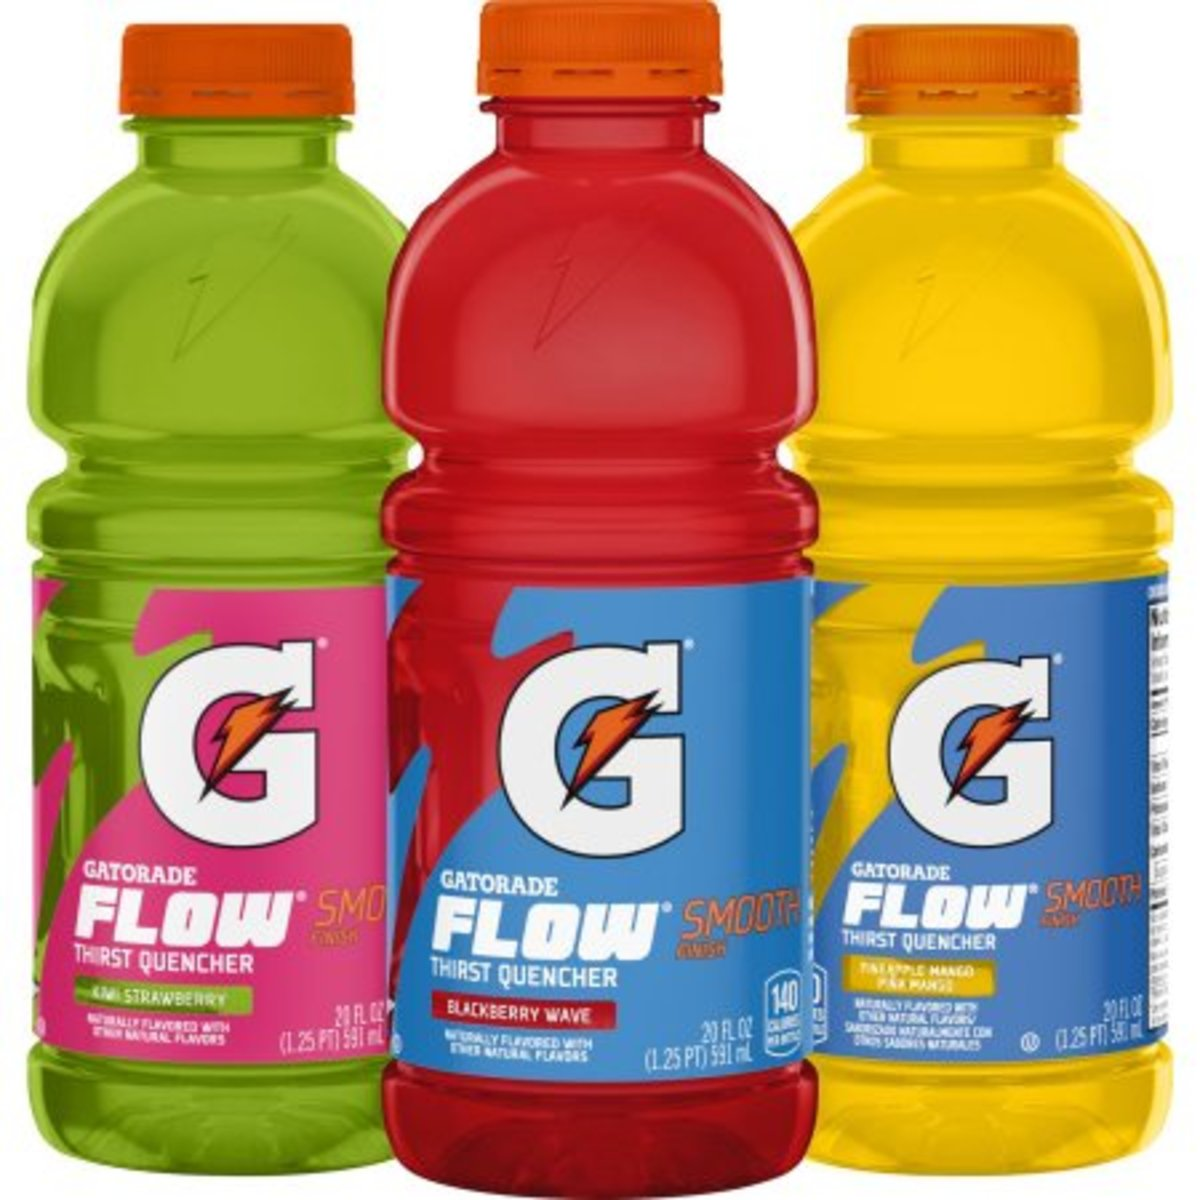 Gatorade & Powerade vs. Pedialyte - Which is the Healthiest?